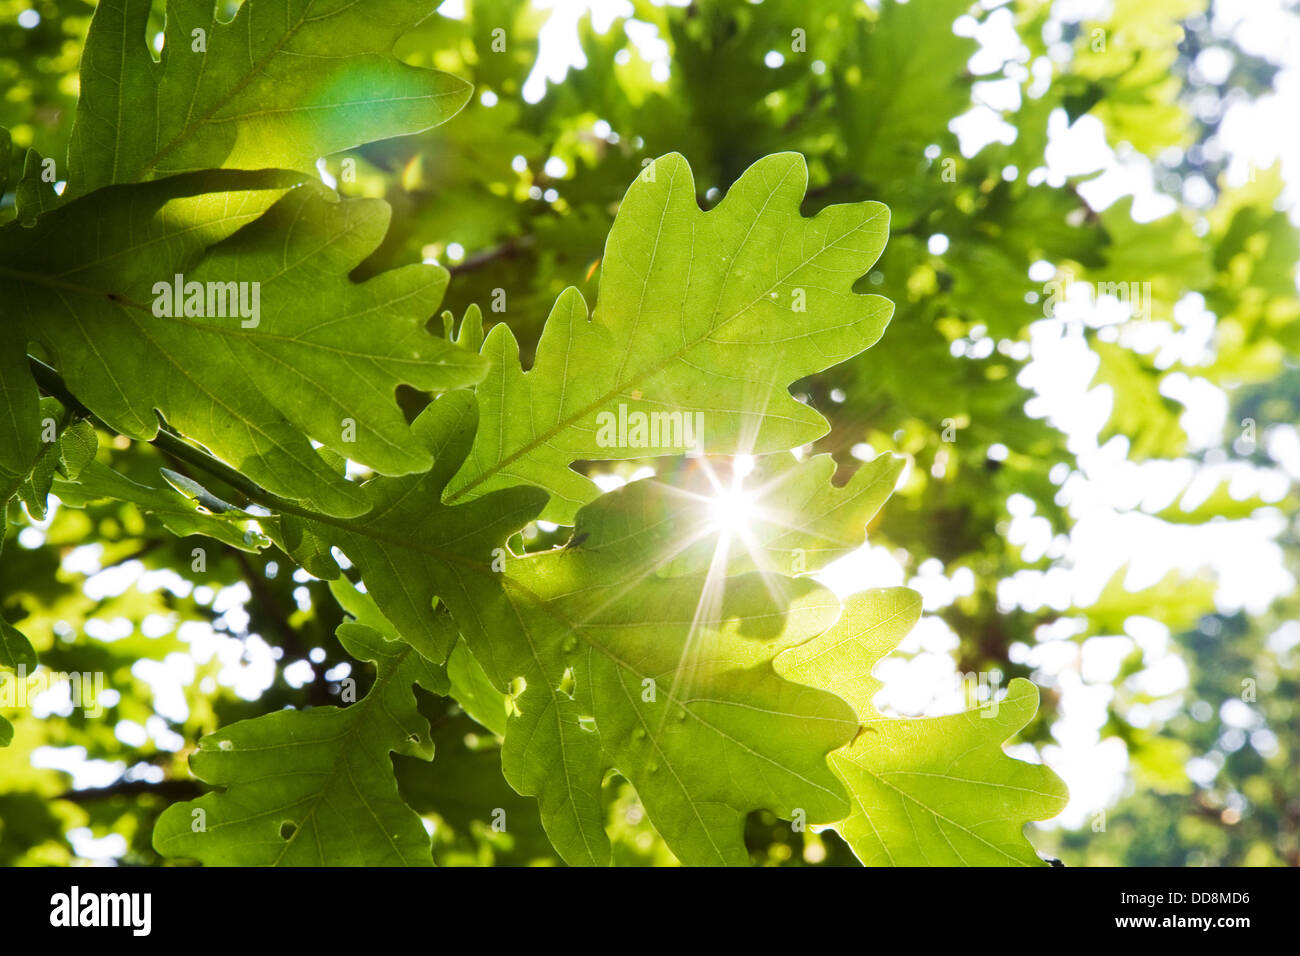 bright sunlight flaring through the leaves of an oak tree - Stock Image